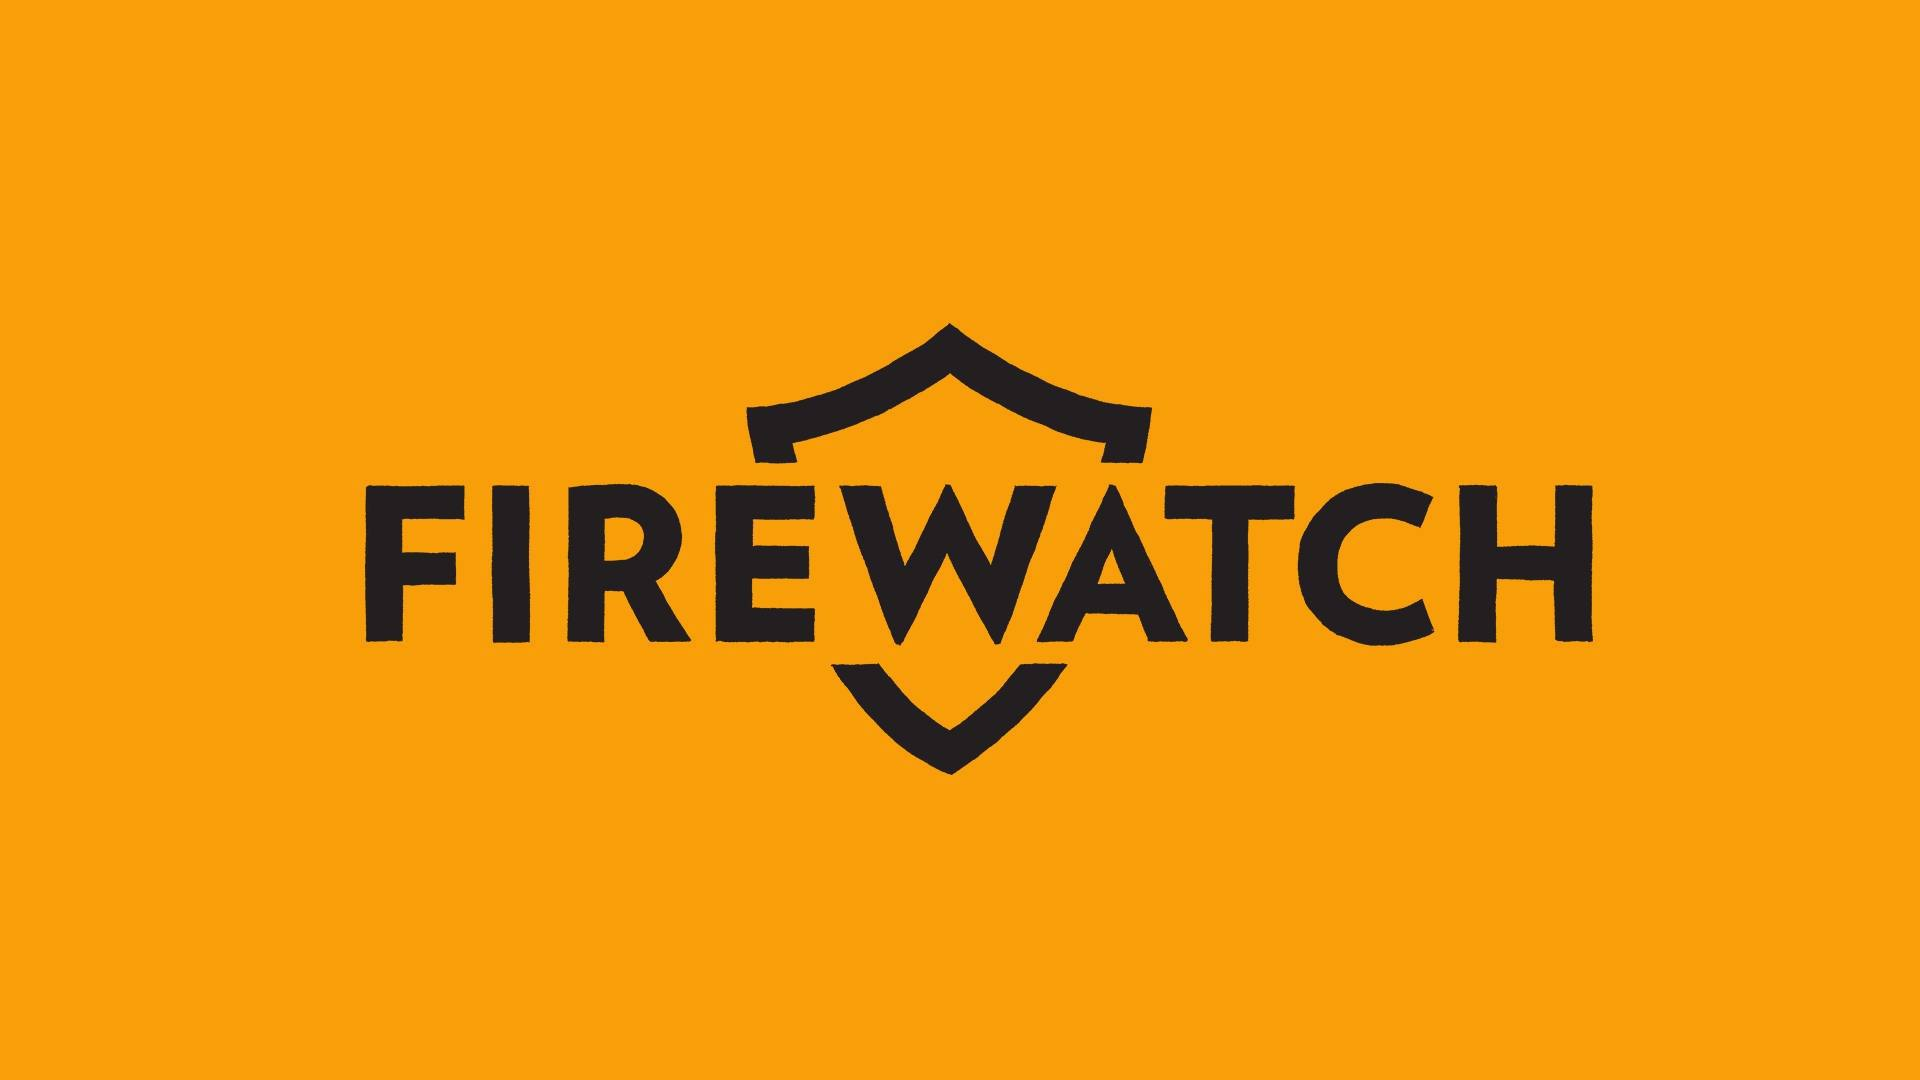 Firewatch Wallpapers HD